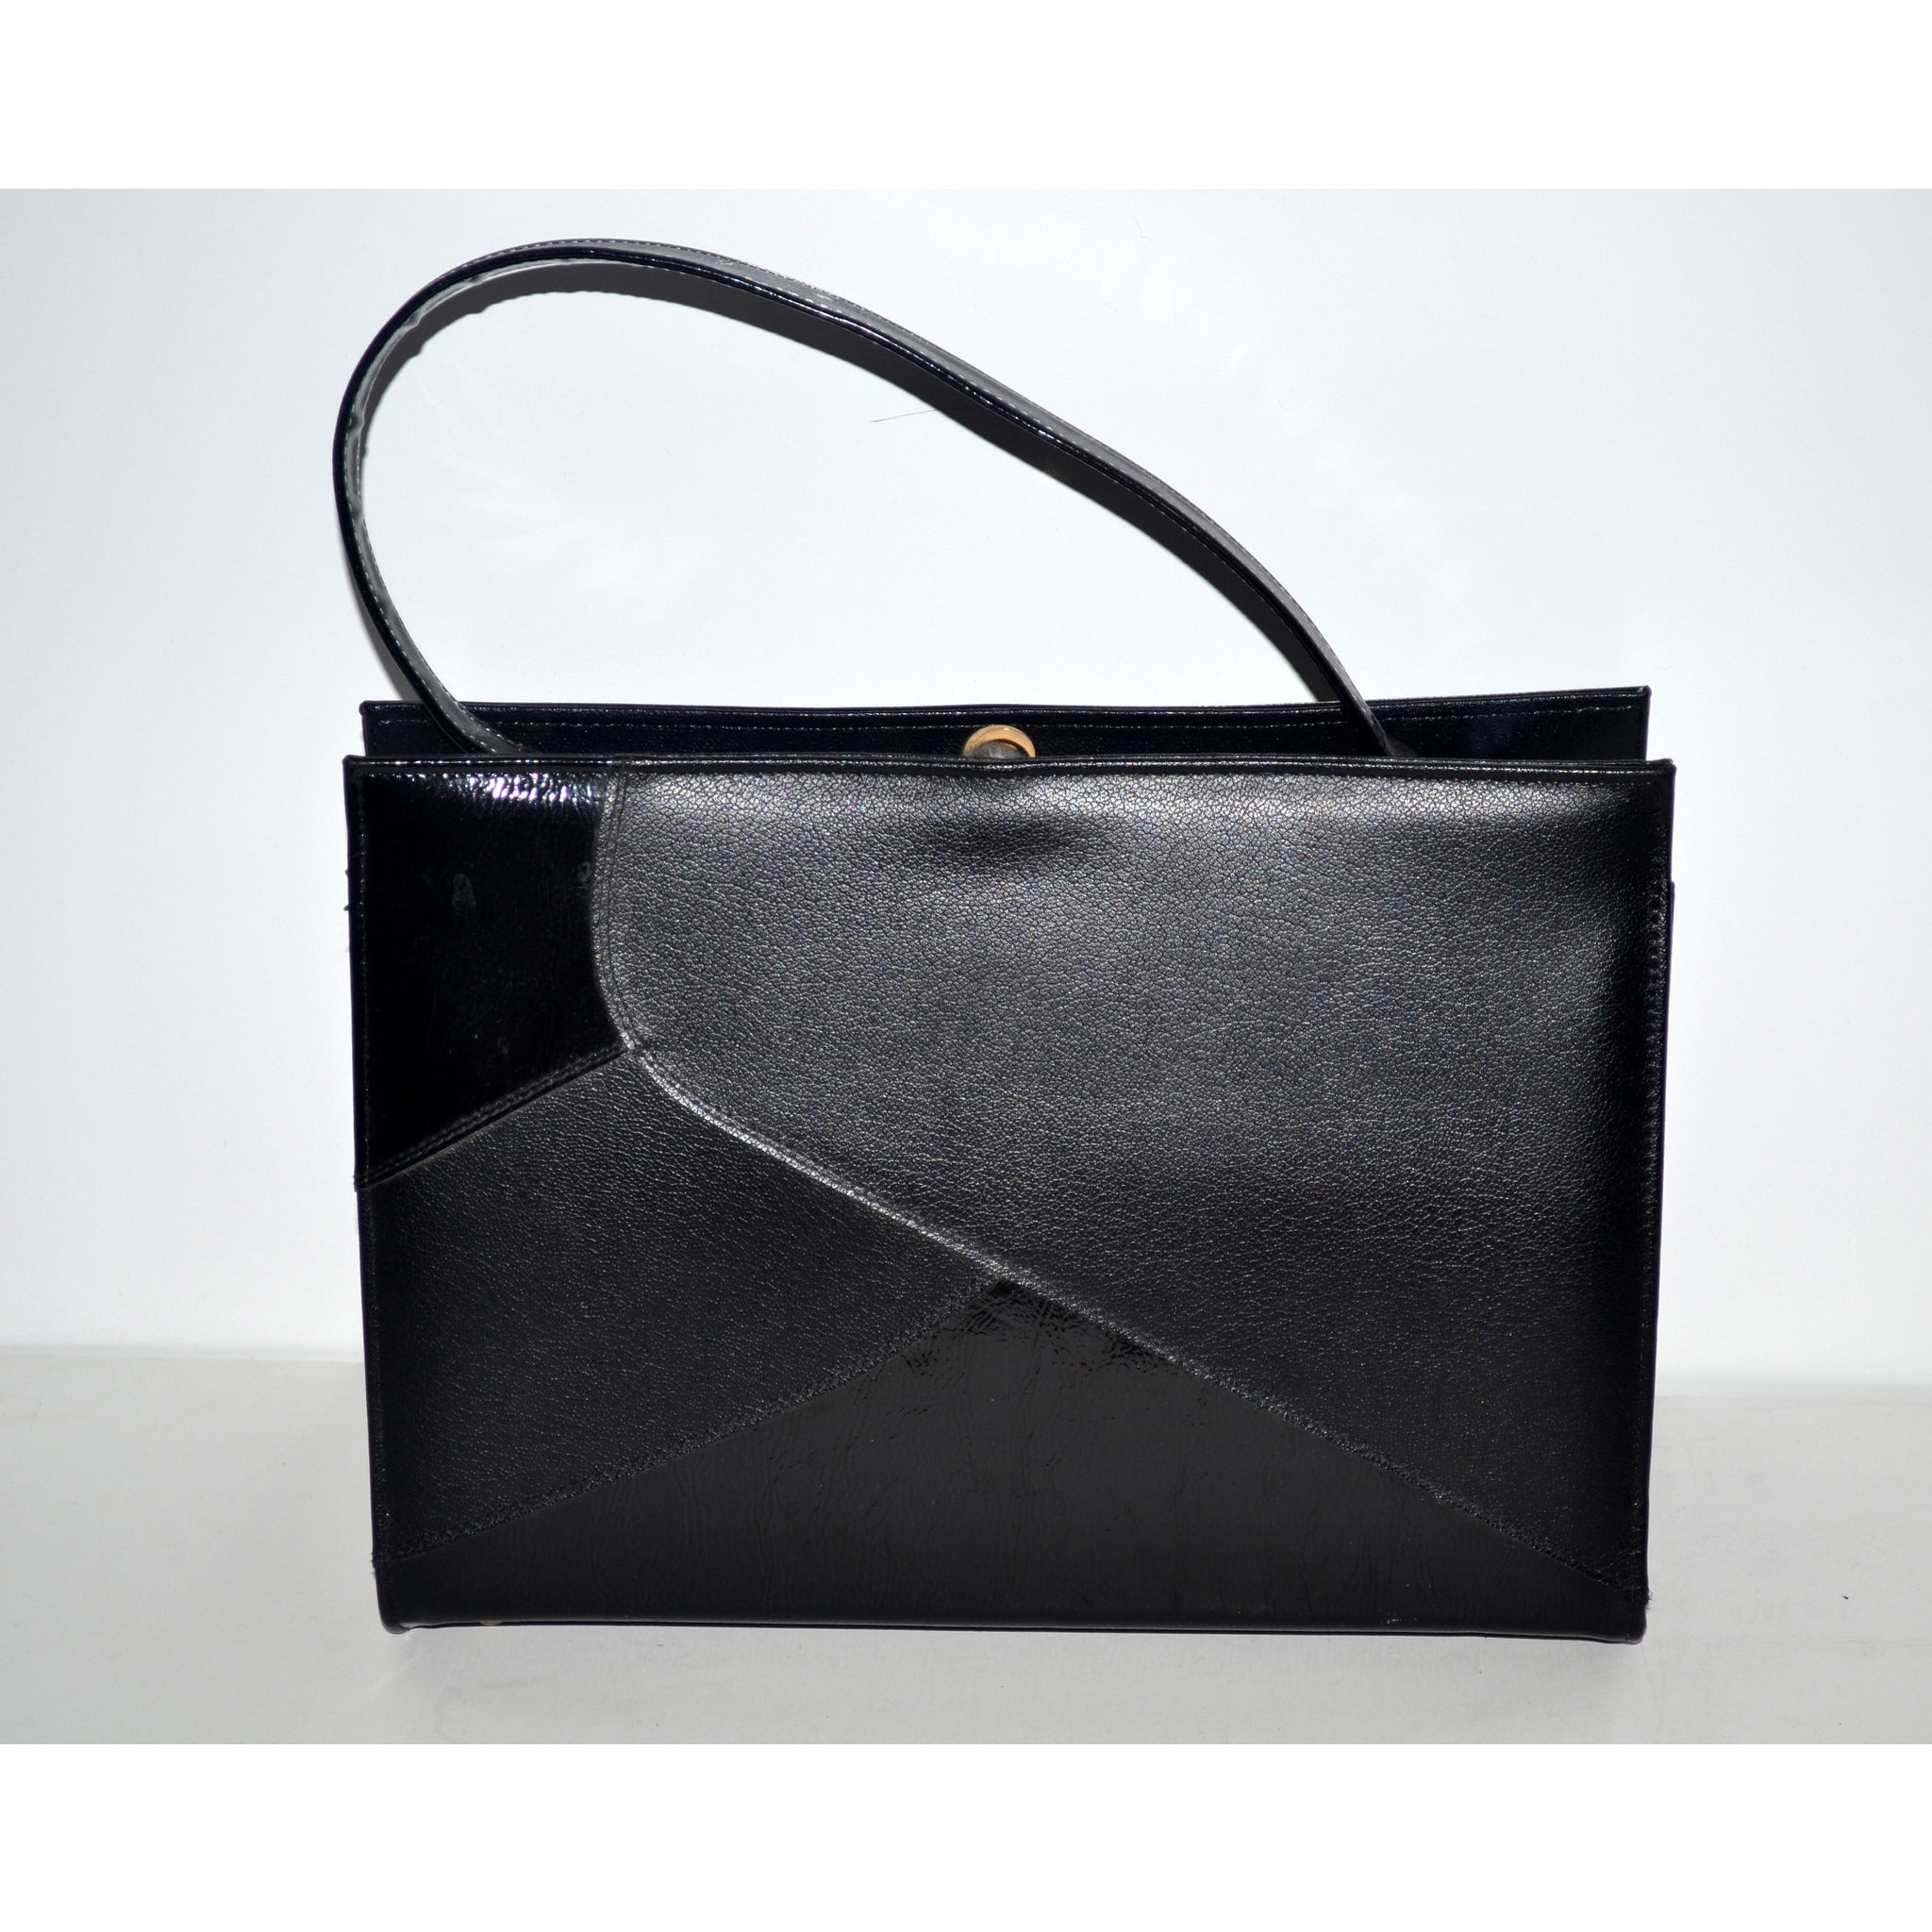 Vintage Black Simulated Leather Handbag By Naturalizer